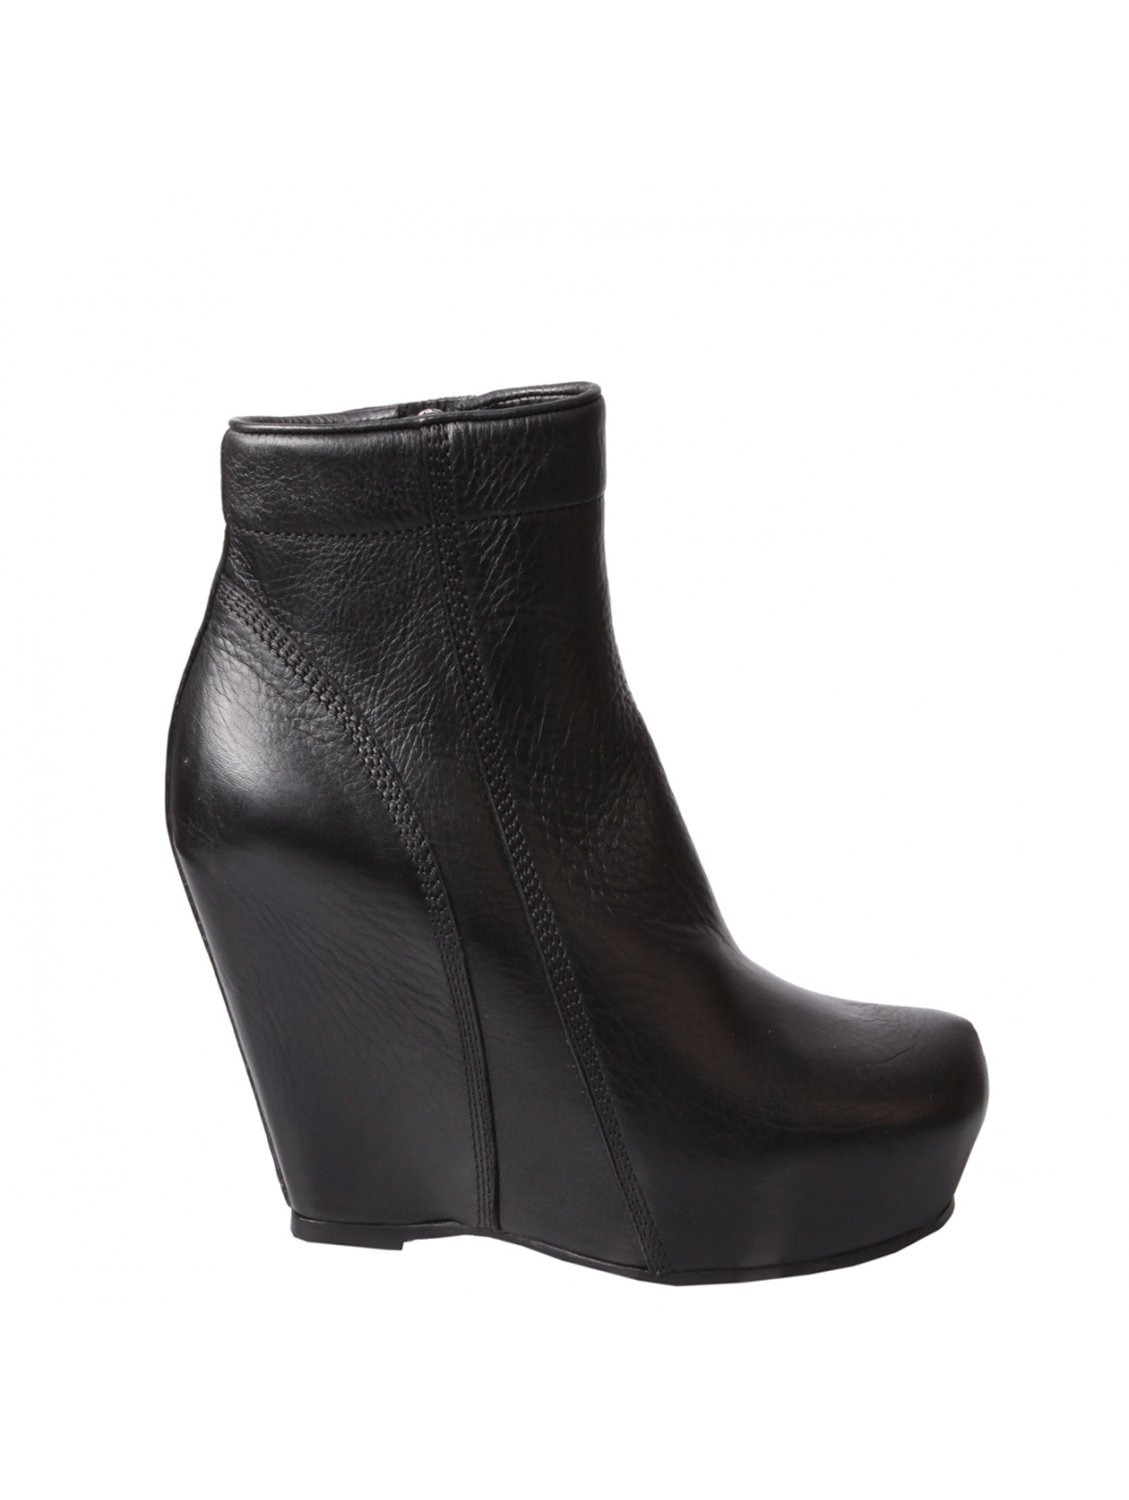 Wedge Black Ankle Boots - Yu Boots